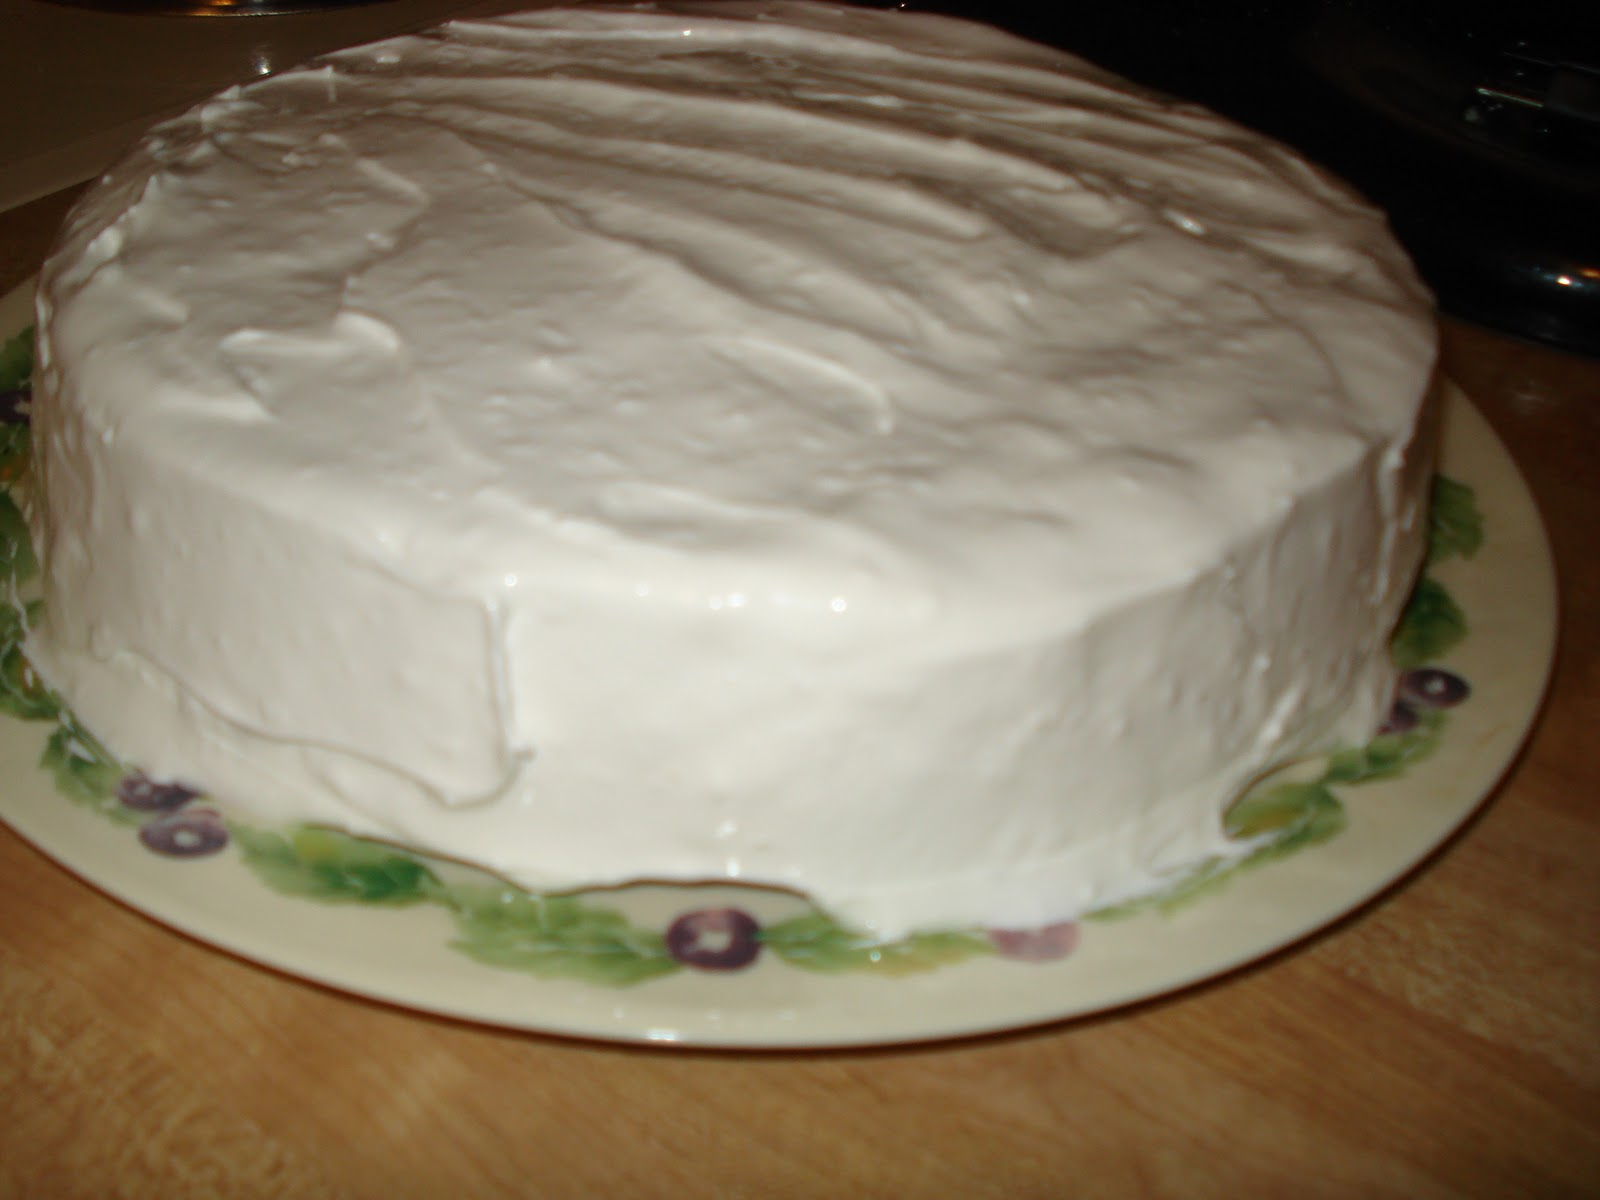 The Social Baker: Rich Chocolate Cake with Fluffy White Frosting